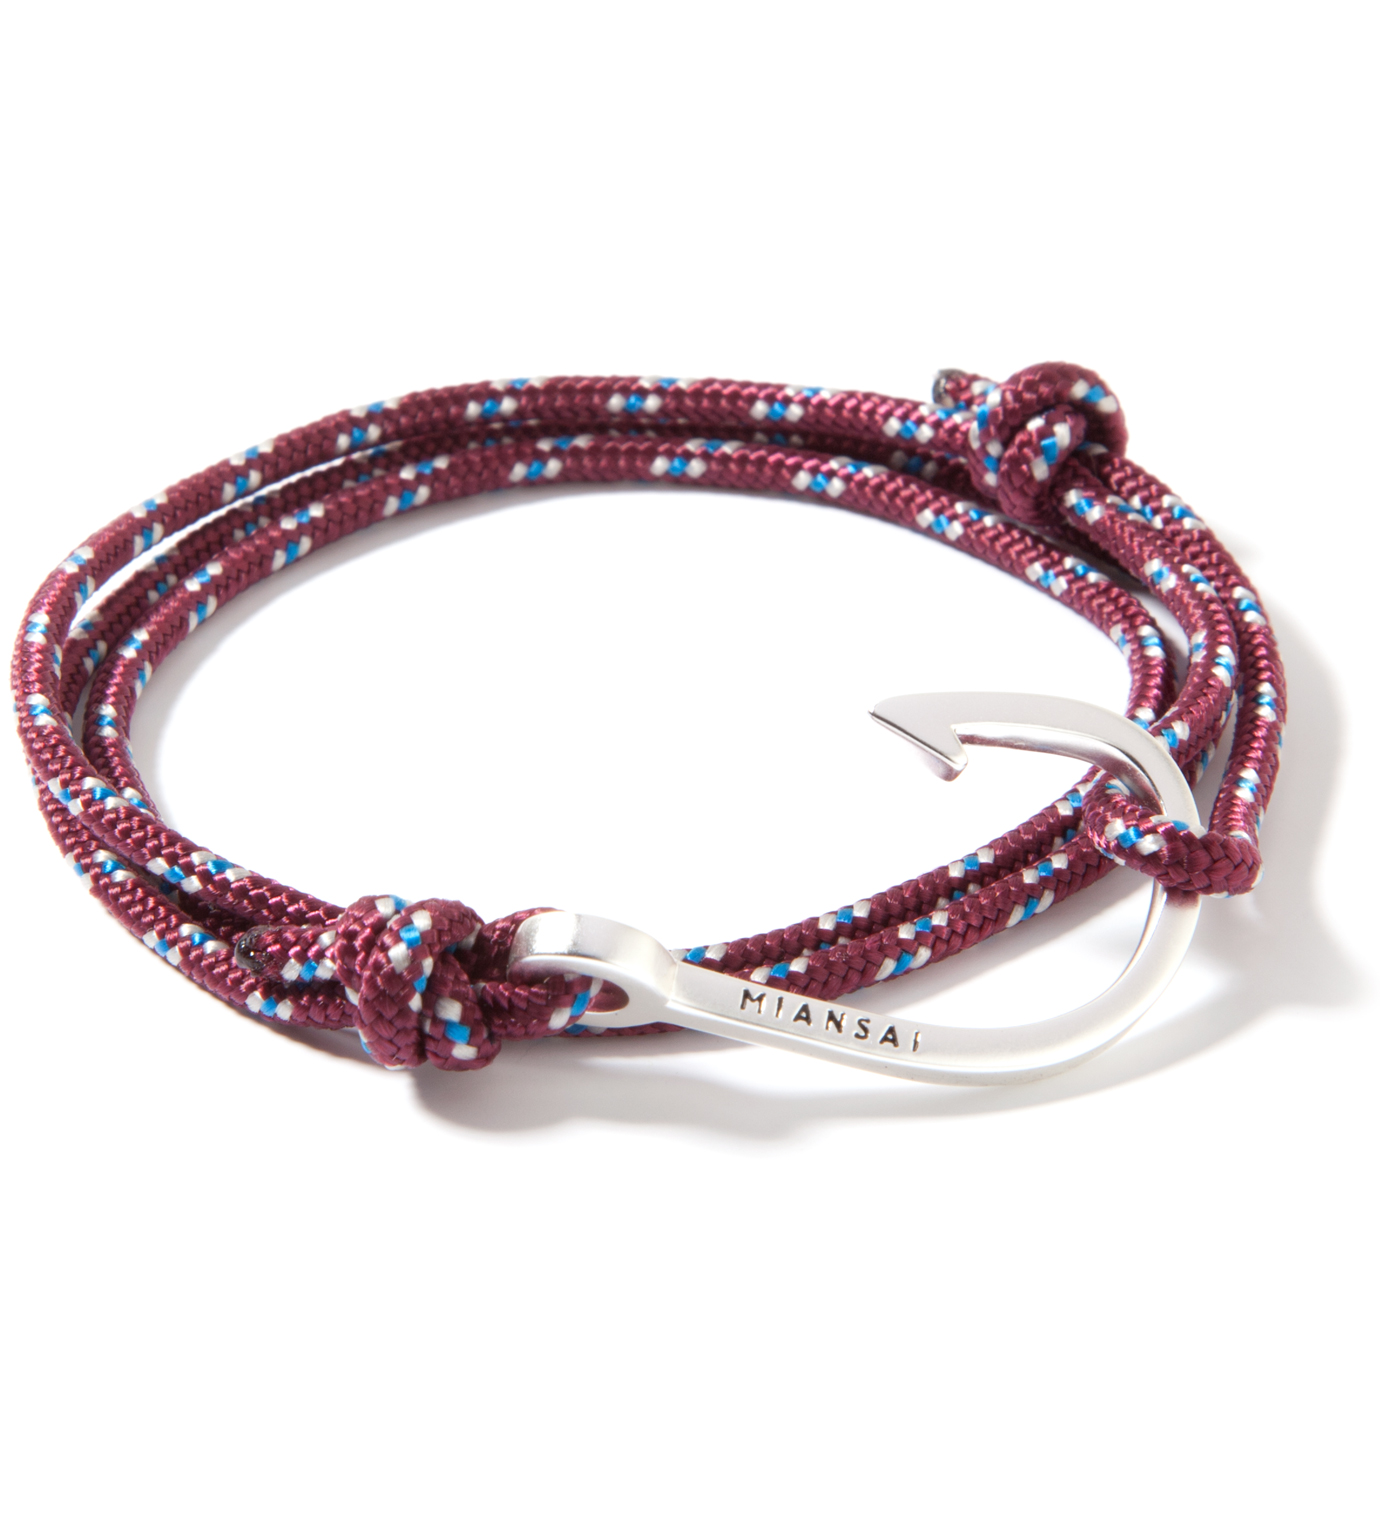 Miansai Silver Hook on Burgundy Rope Bracelet